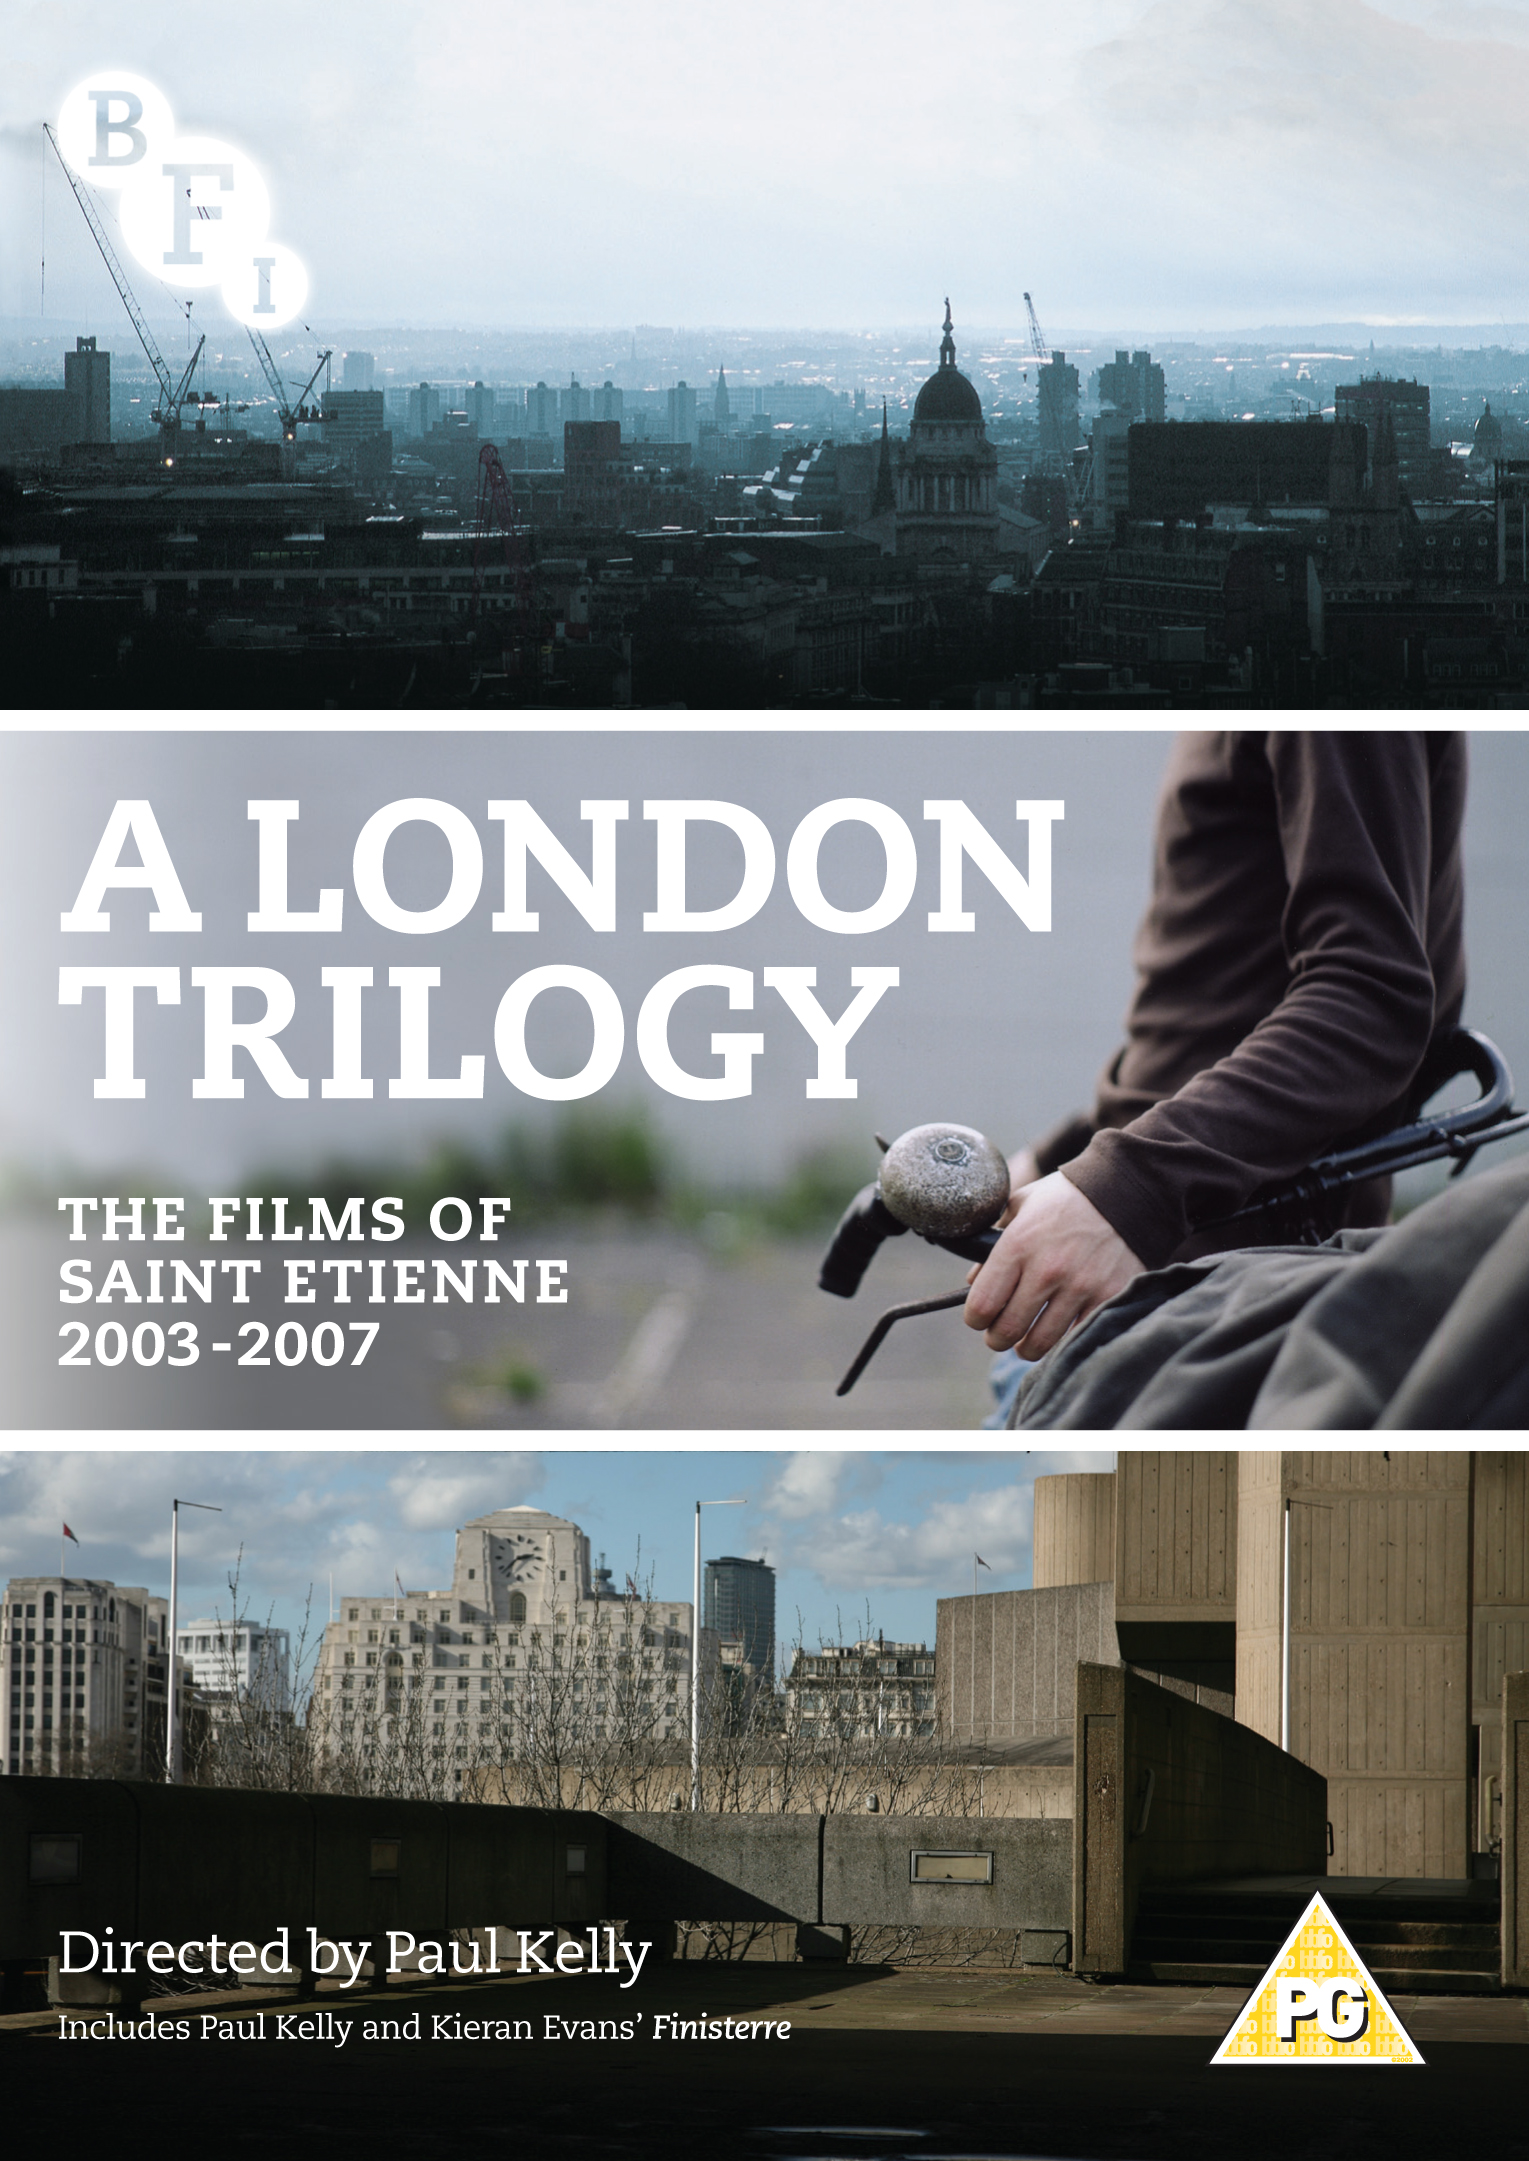 Buy A London Trilogy on DVD and Blu Ray